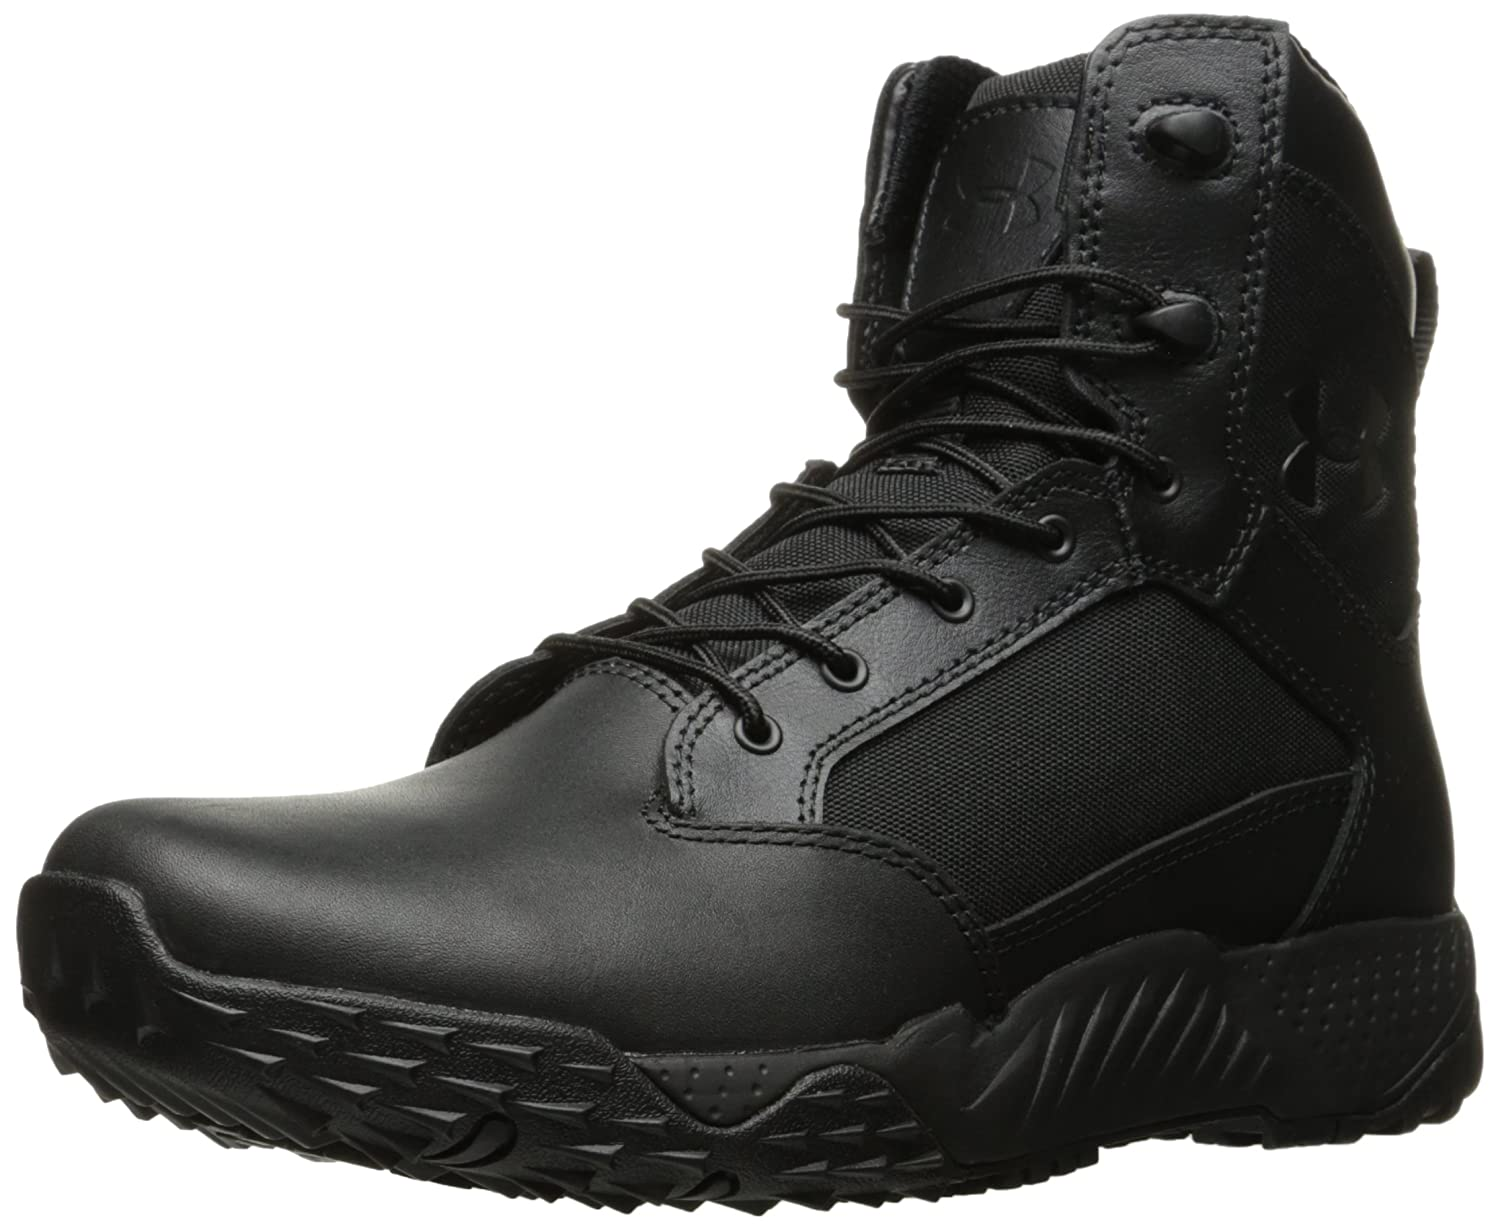 a73923279e Amazon.com: Under Armour Women's Stryker Military and Tactical Boot ...